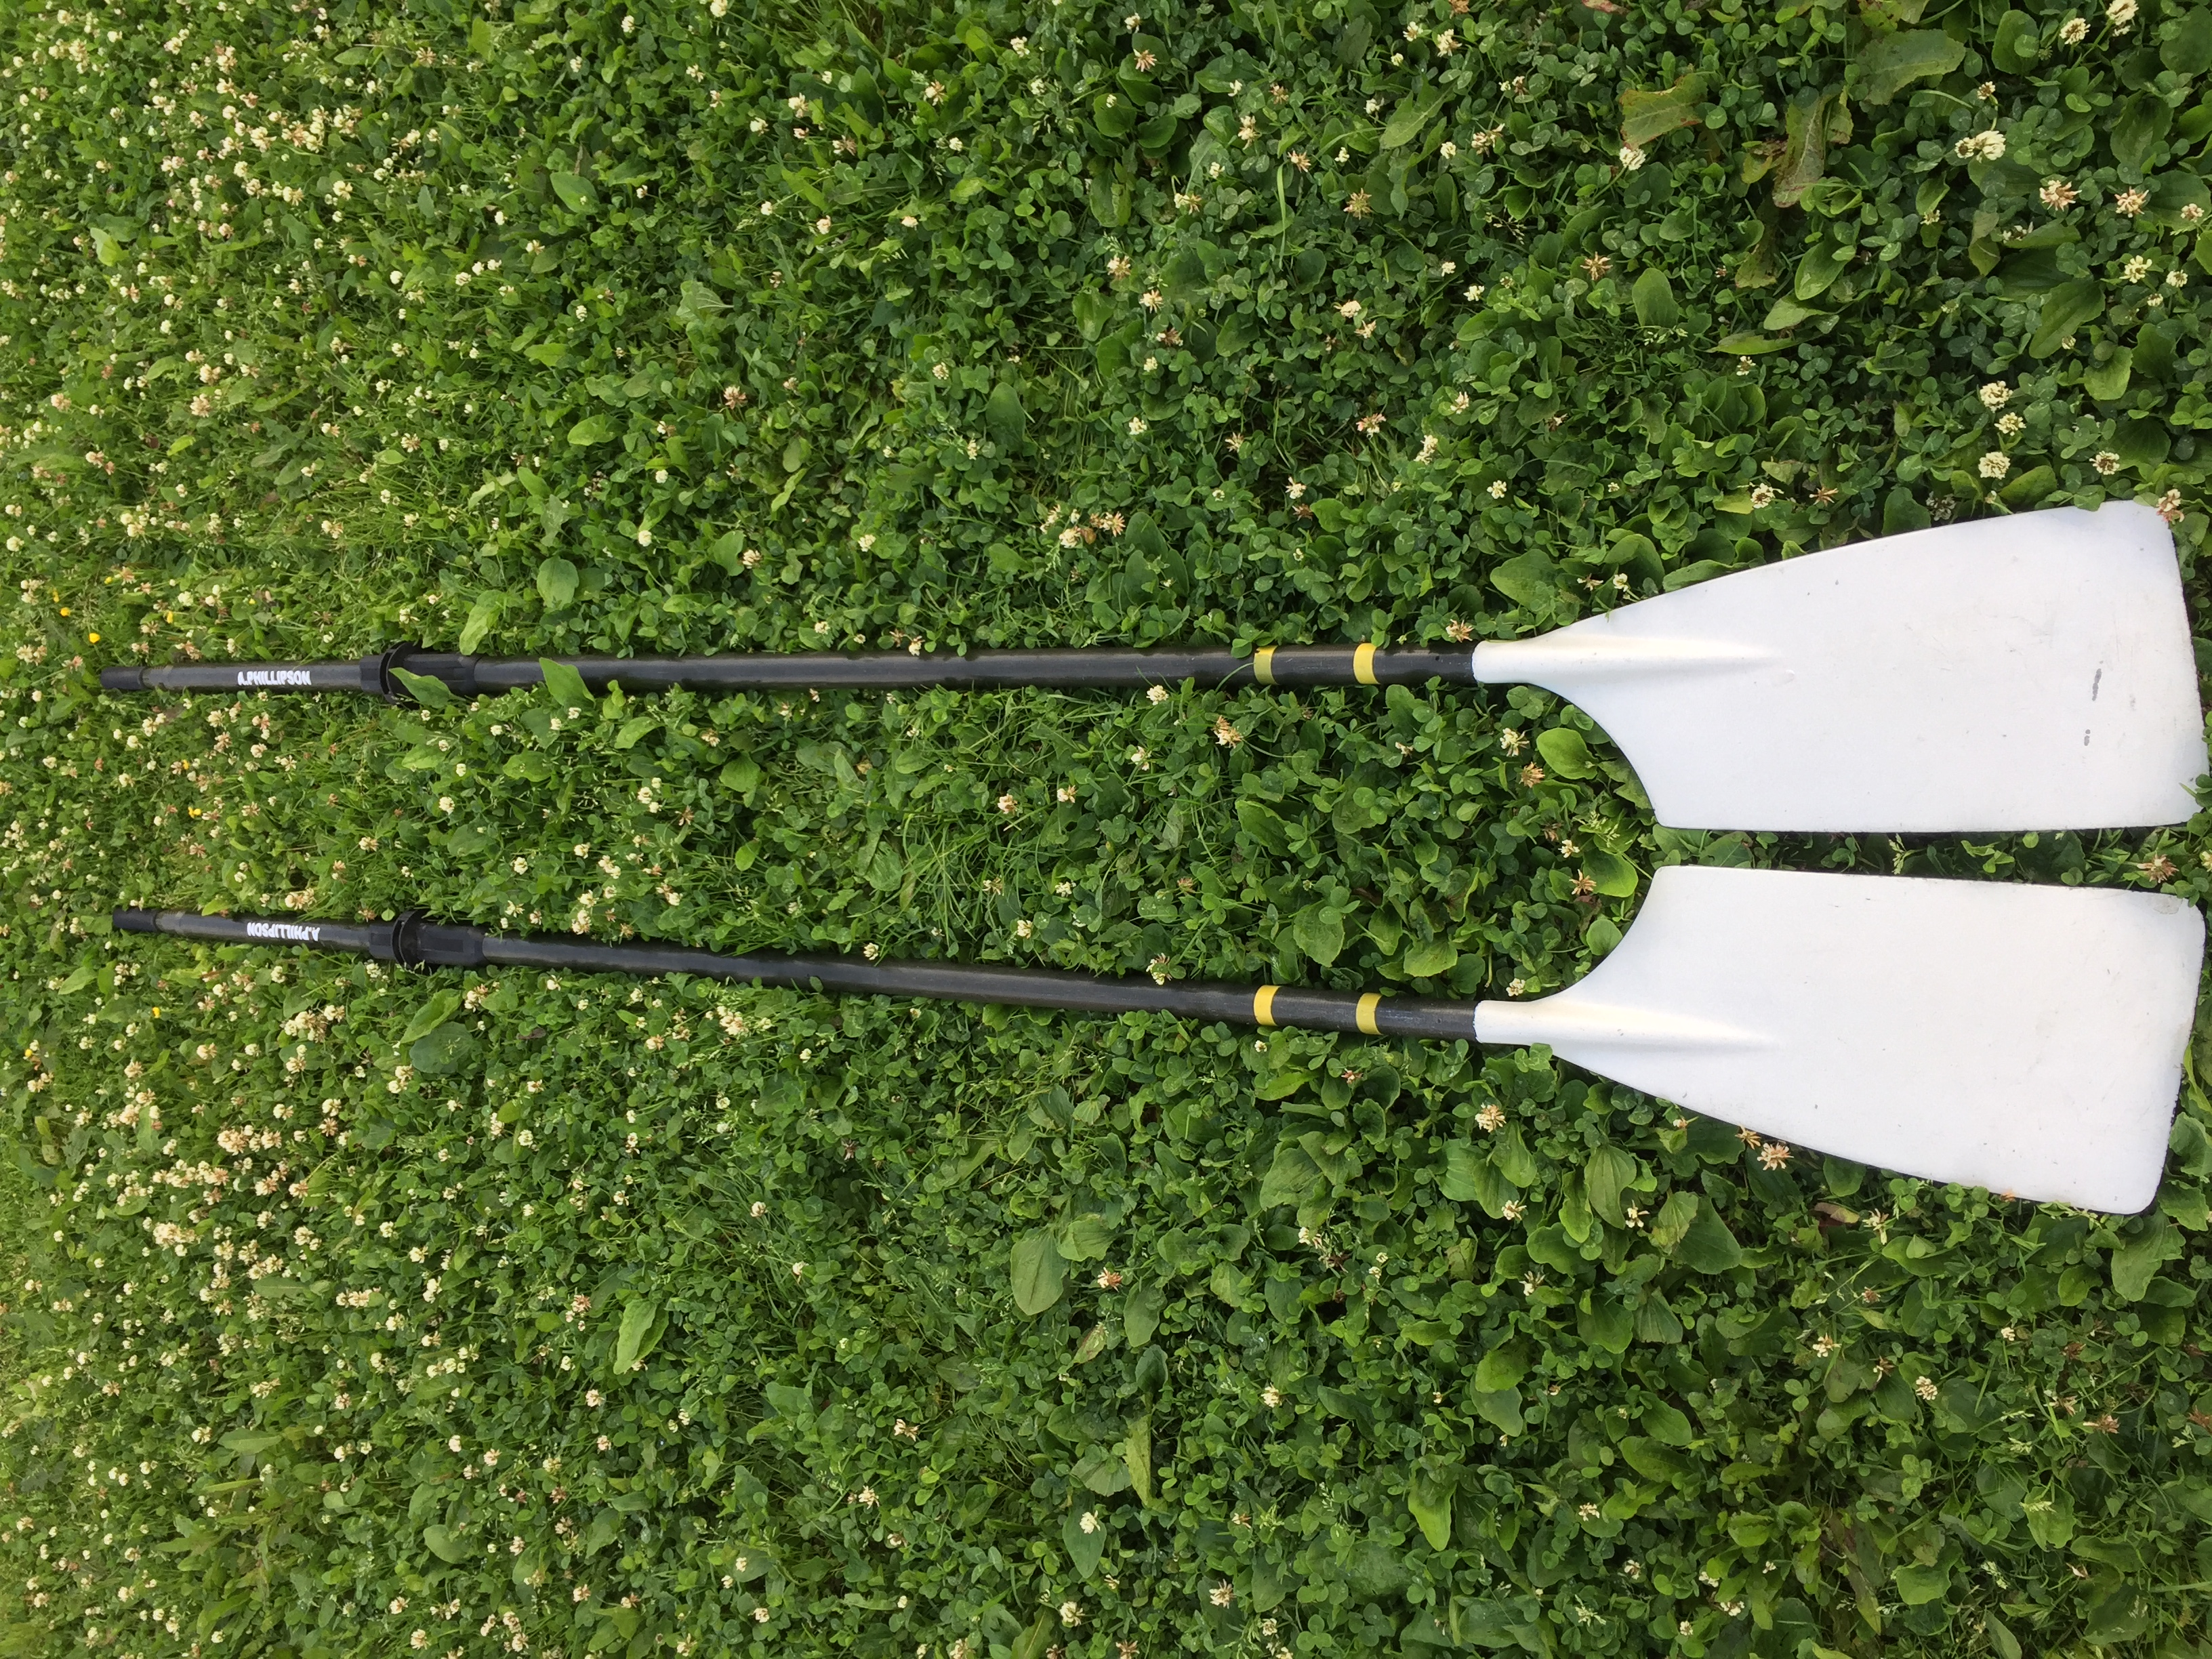 Dreher sculls for sale